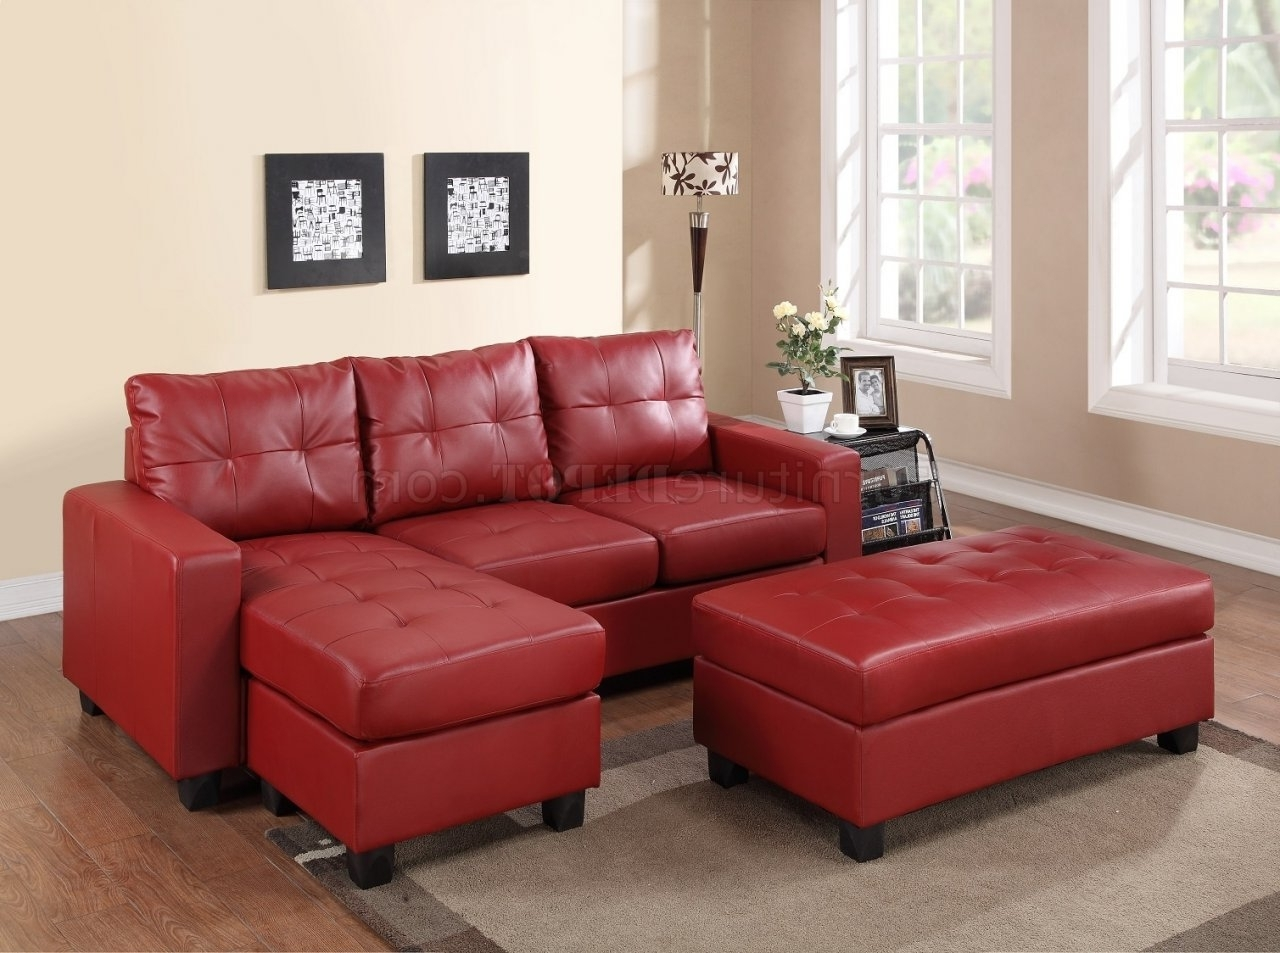 2511 Sectional Sofa Set In Red Bonded Leather Match Pu Pertaining To Widely Used Red Leather Sectional Couches (View 2 of 15)